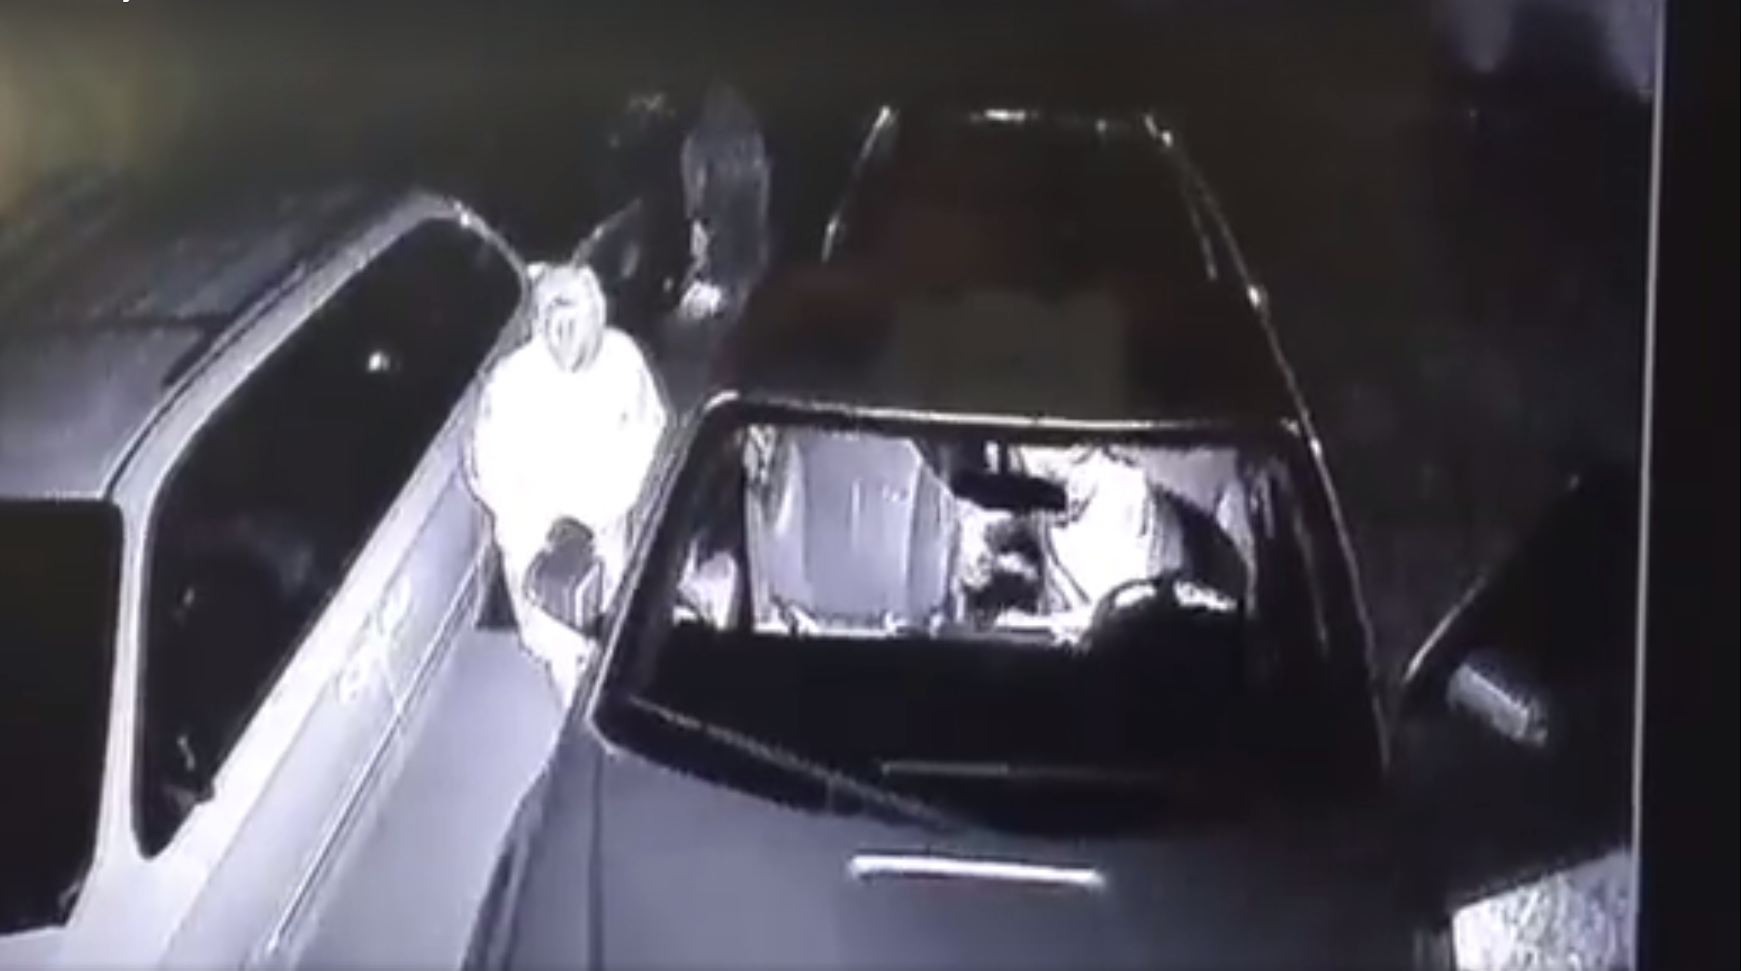 Image from surveillance video shows two suspects breaking into a car in Pueblo West Saturday morning. _ Pueblo County Sheriff's Office_311059